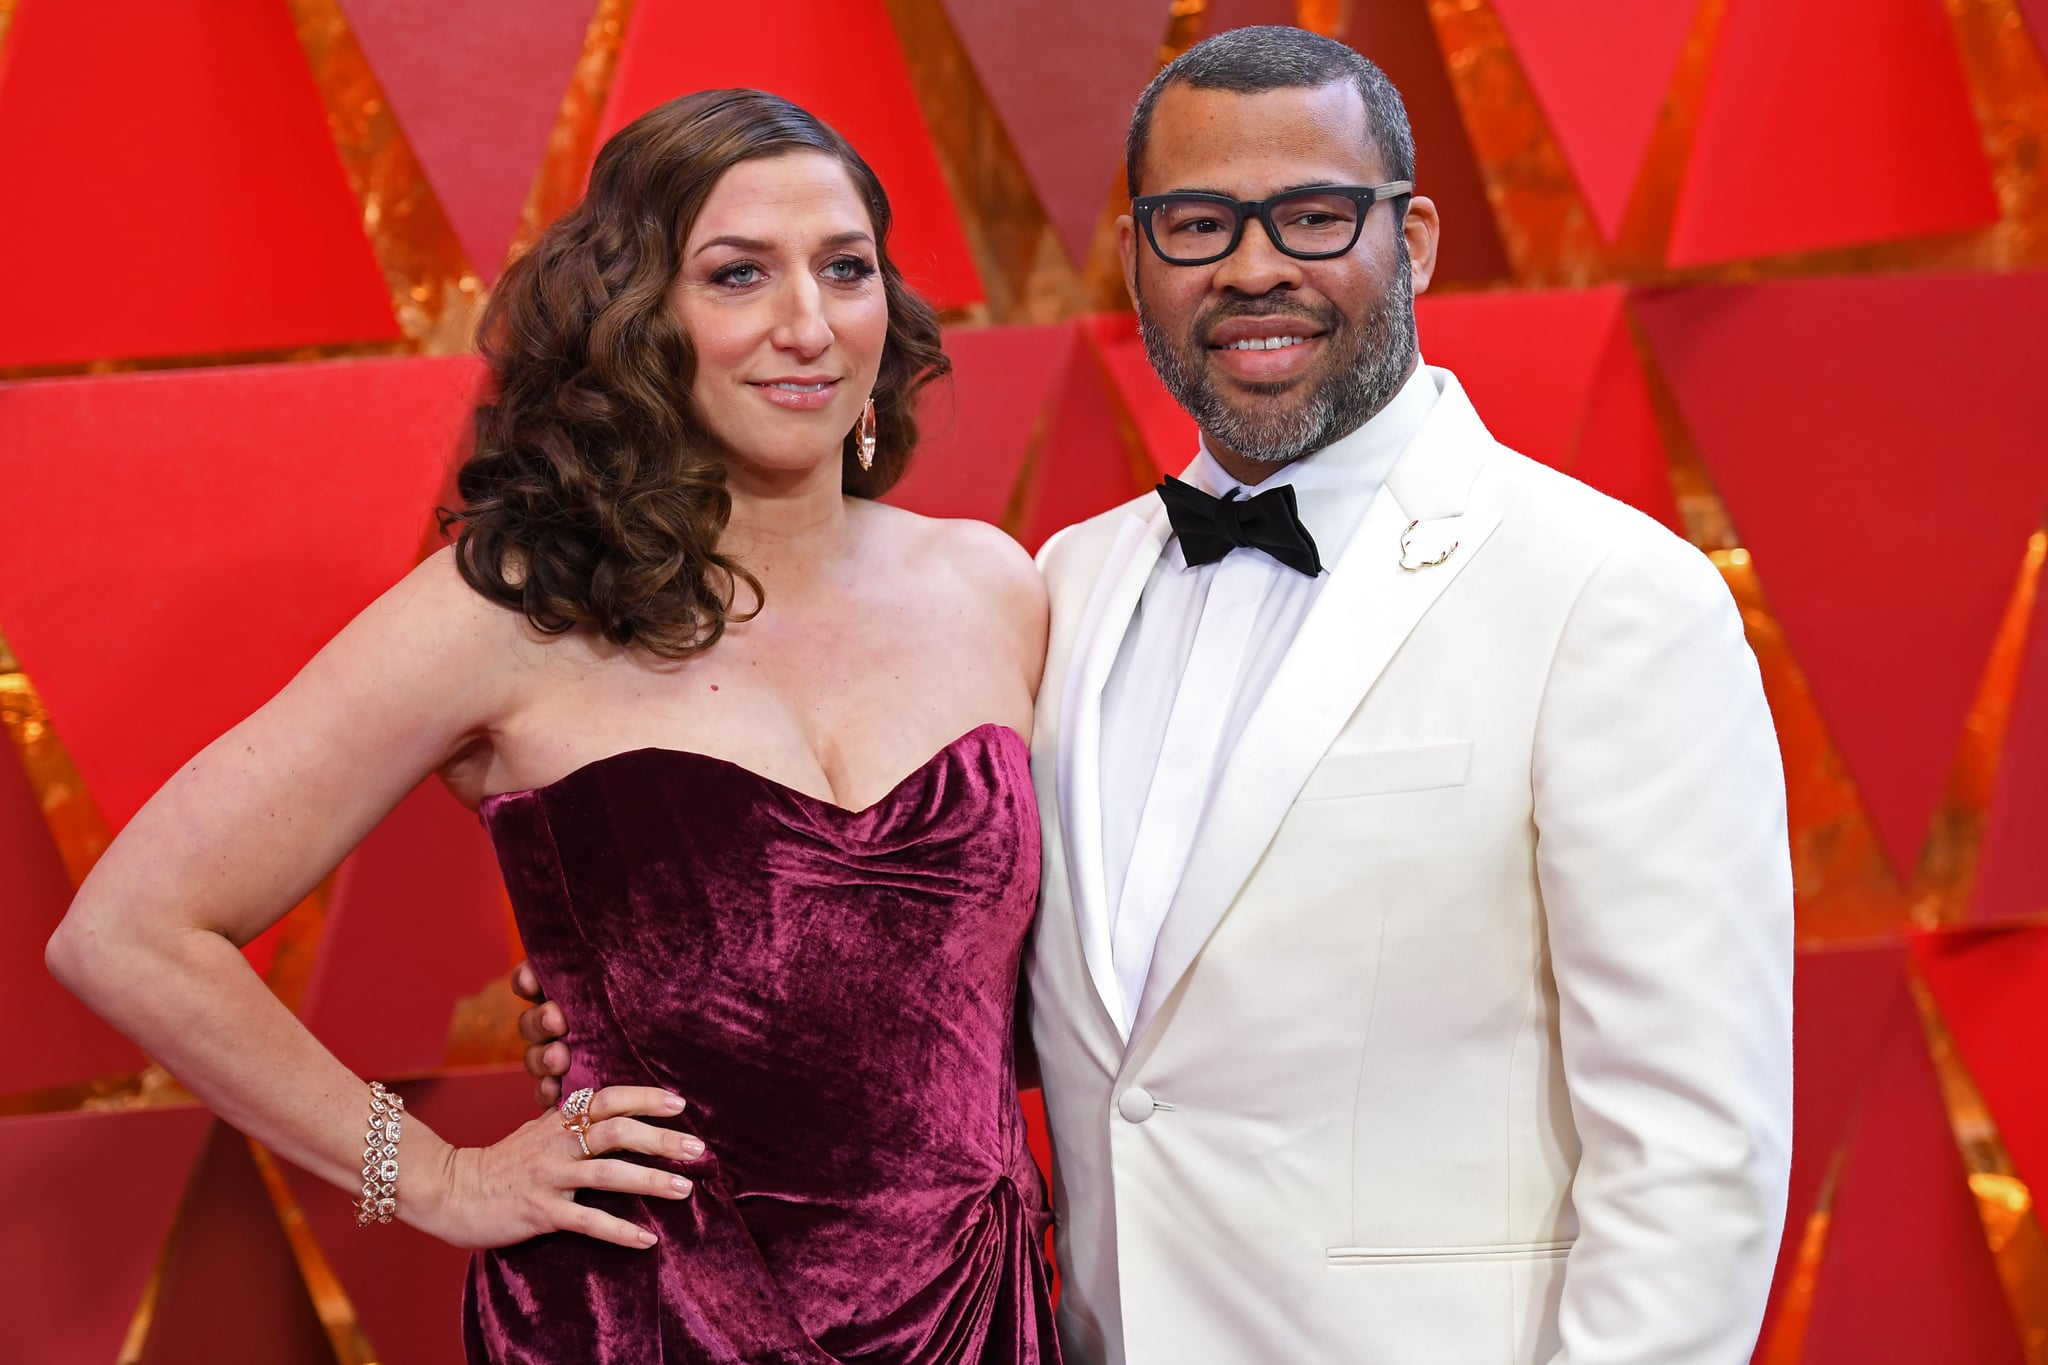 Jordan Peele wins first Oscar for 'Get Out'